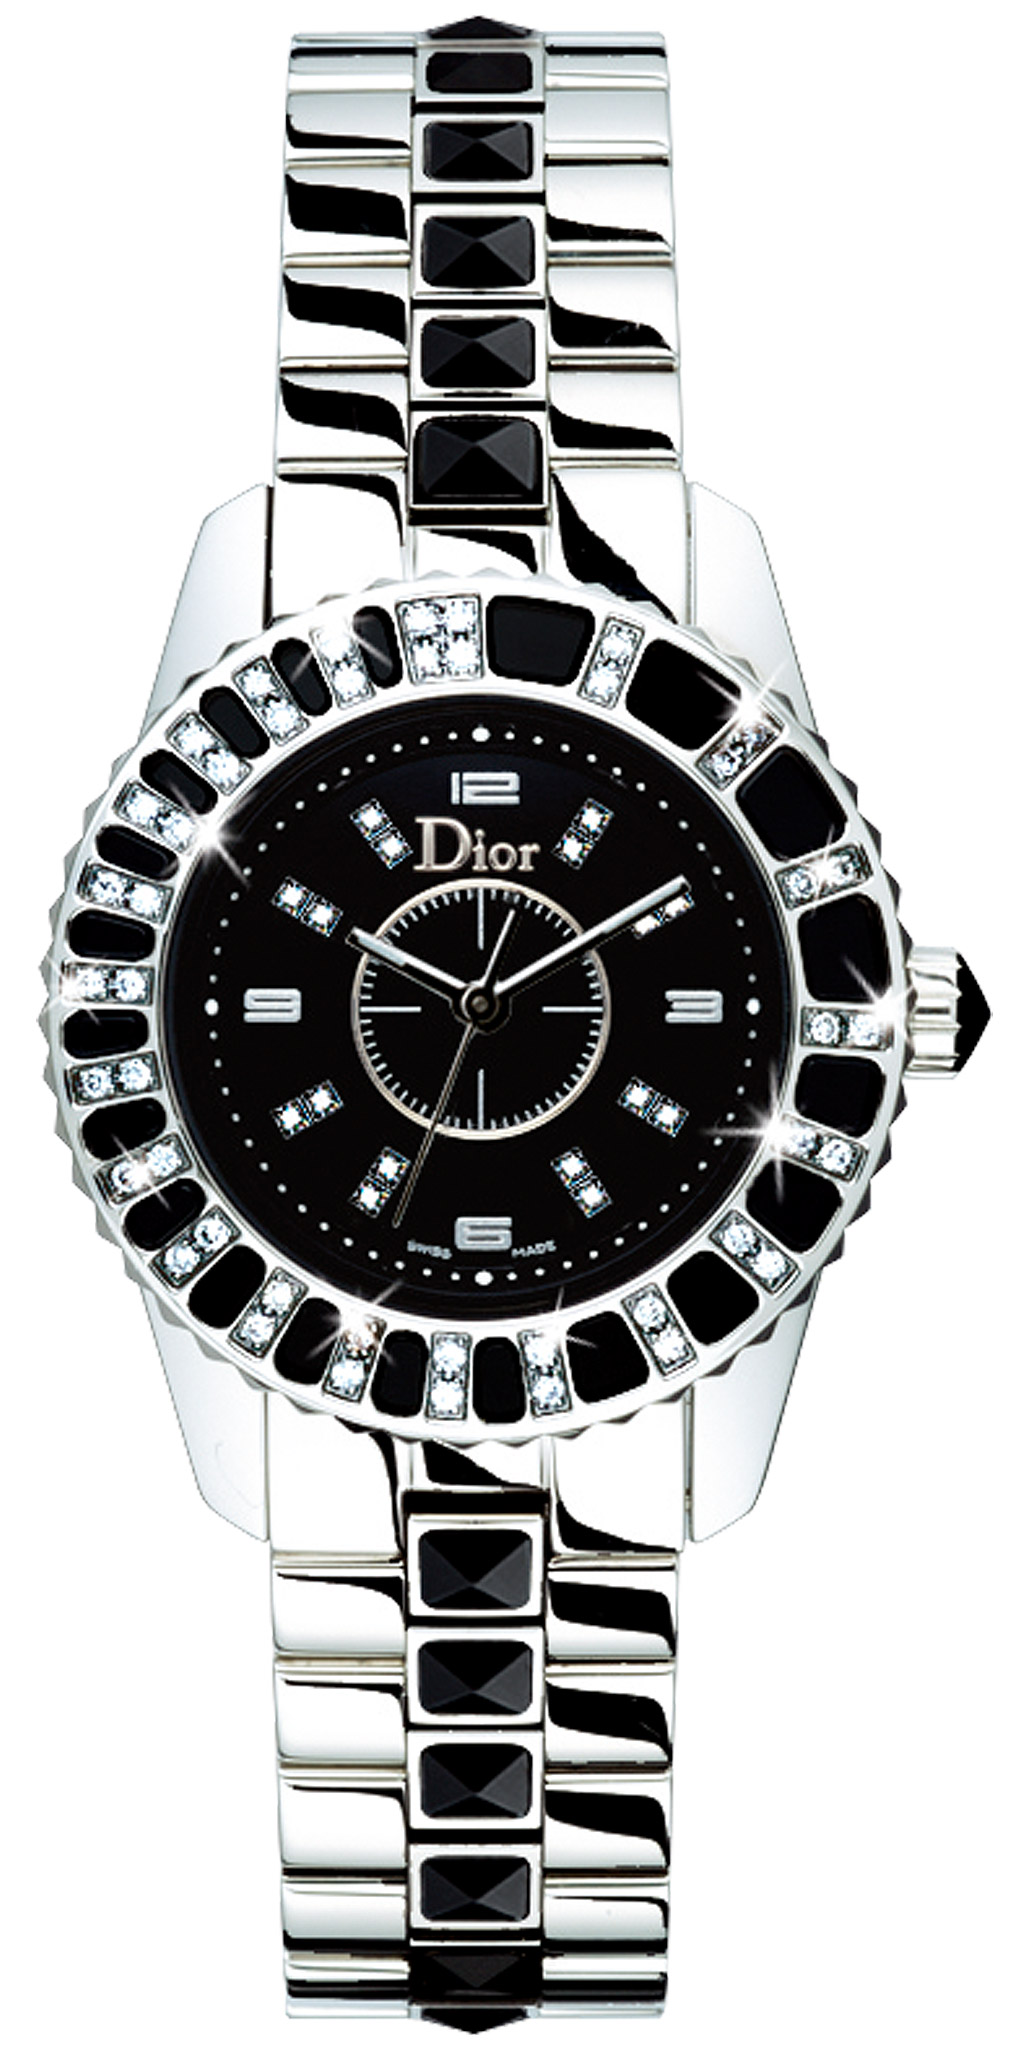 Christian dior christal ladies watch model cd112116m001 for Christian dior watches